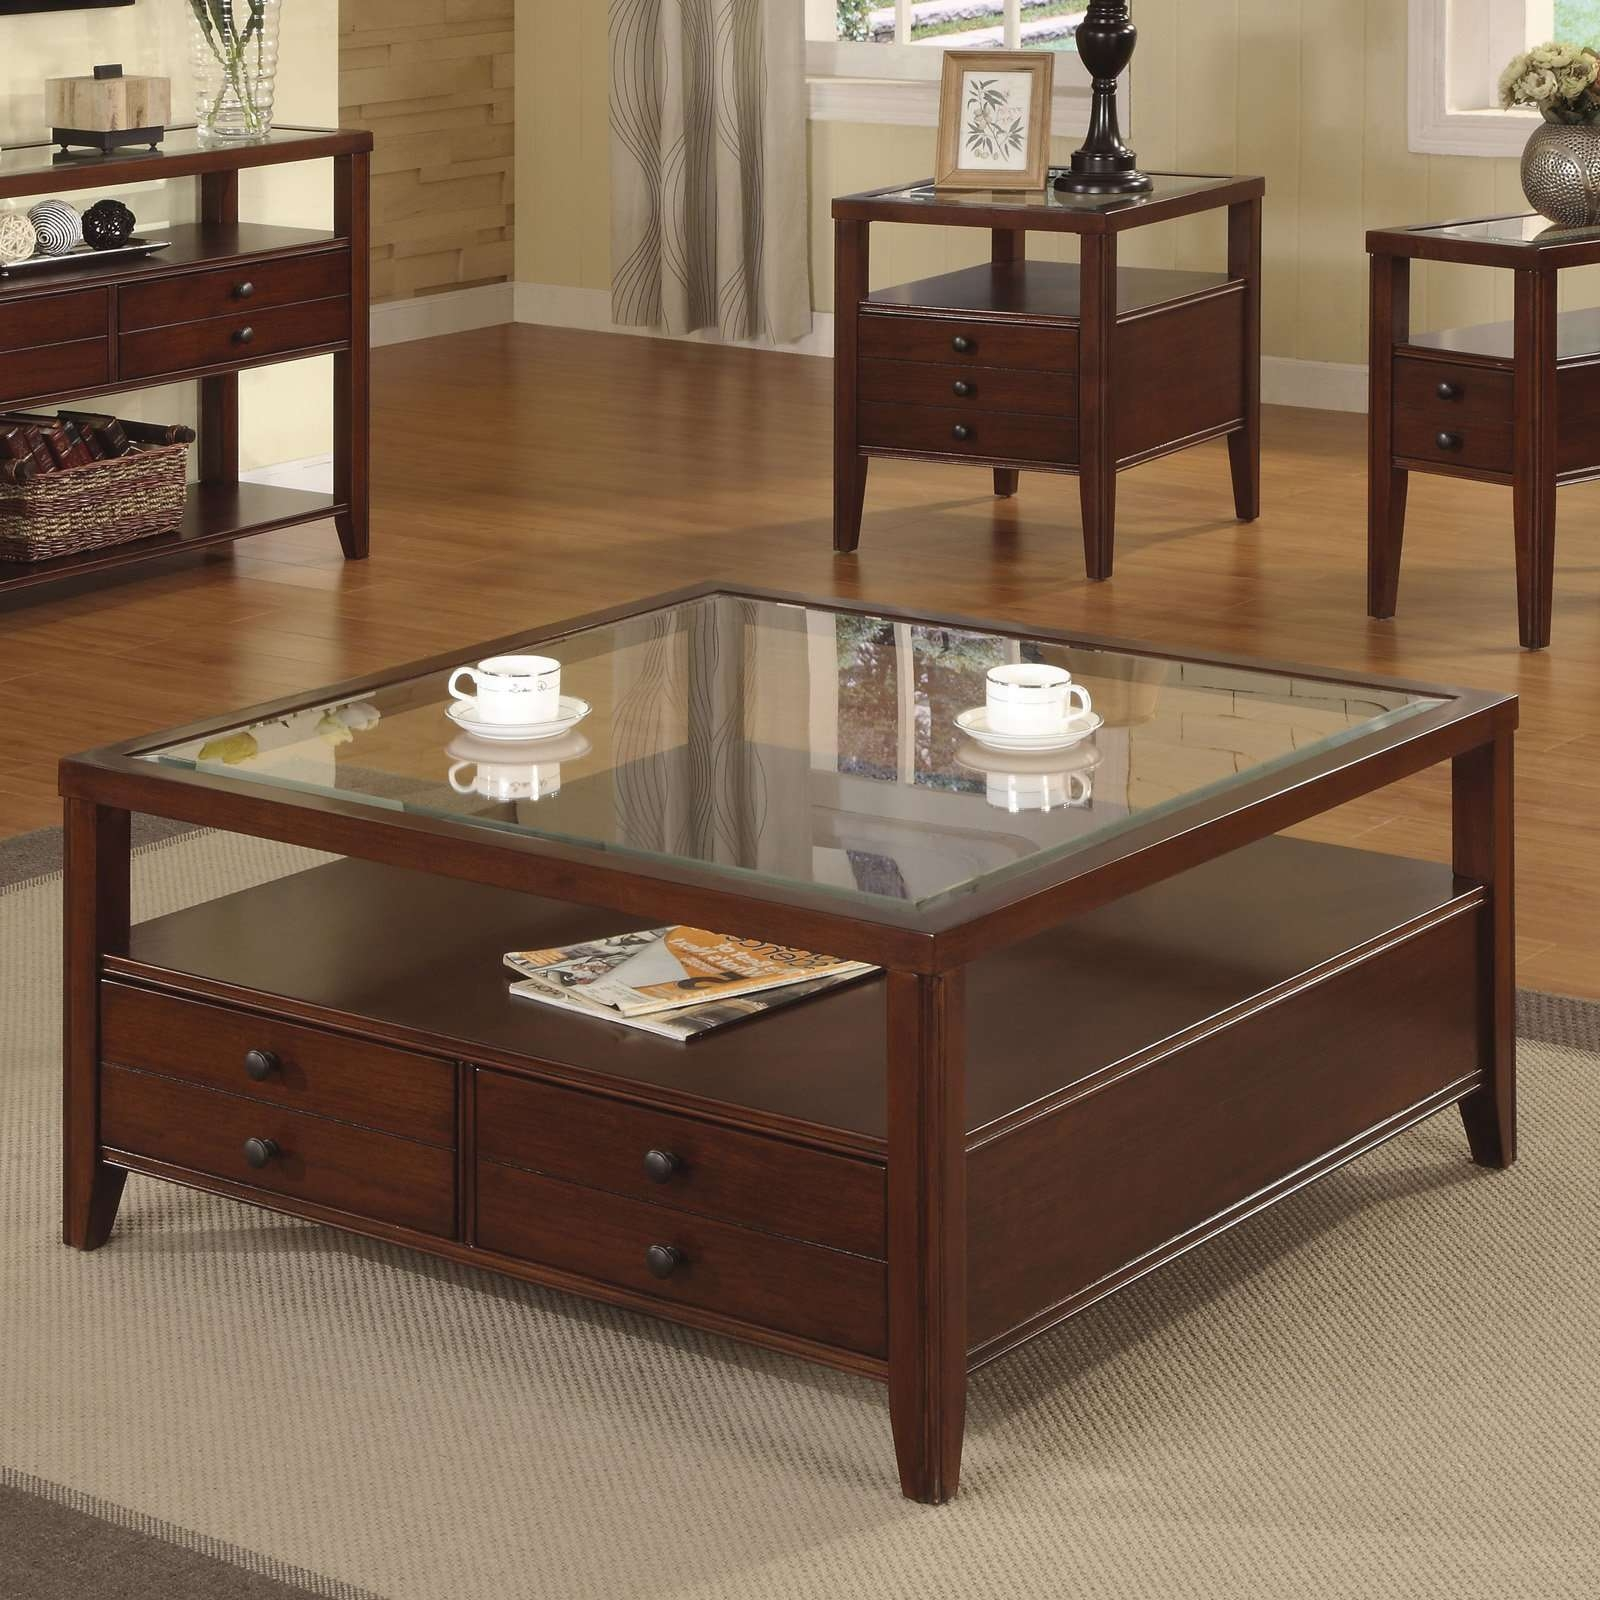 Preferred Square Coffee Tables With Storage Regarding Glass Coffee Tables: Marvellous Square Coffee Table With Glass Top (View 15 of 20)